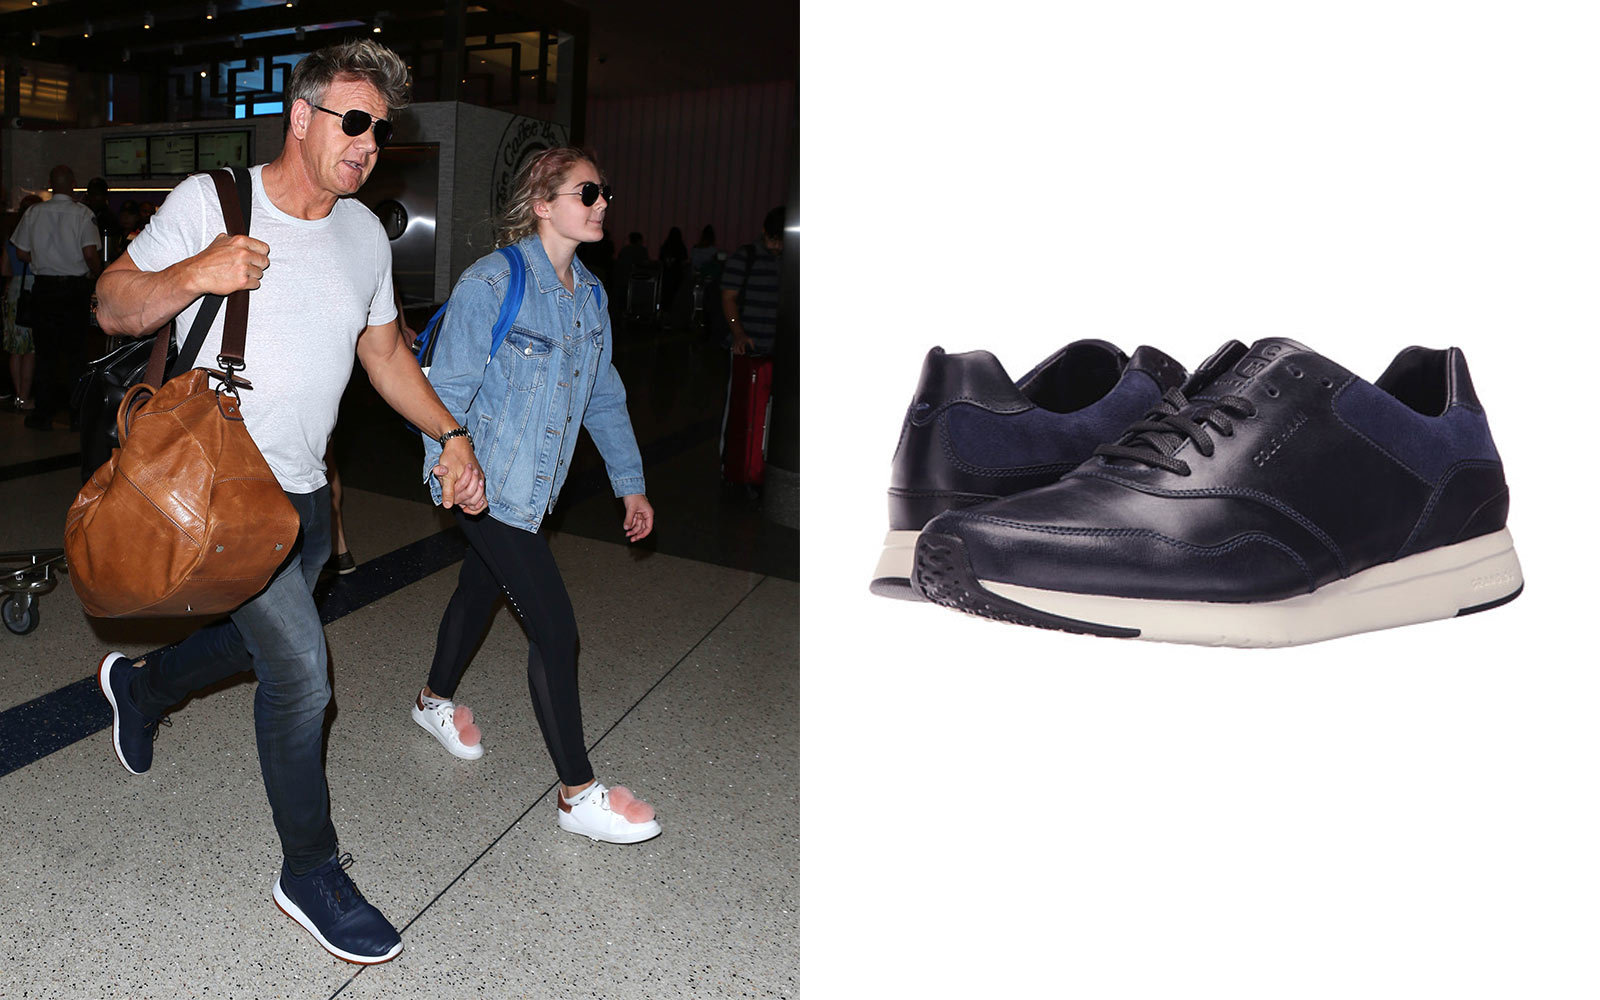 the Go on Wear Leisure Celebrities Travel to 14 Love Sneakers xq4YFF